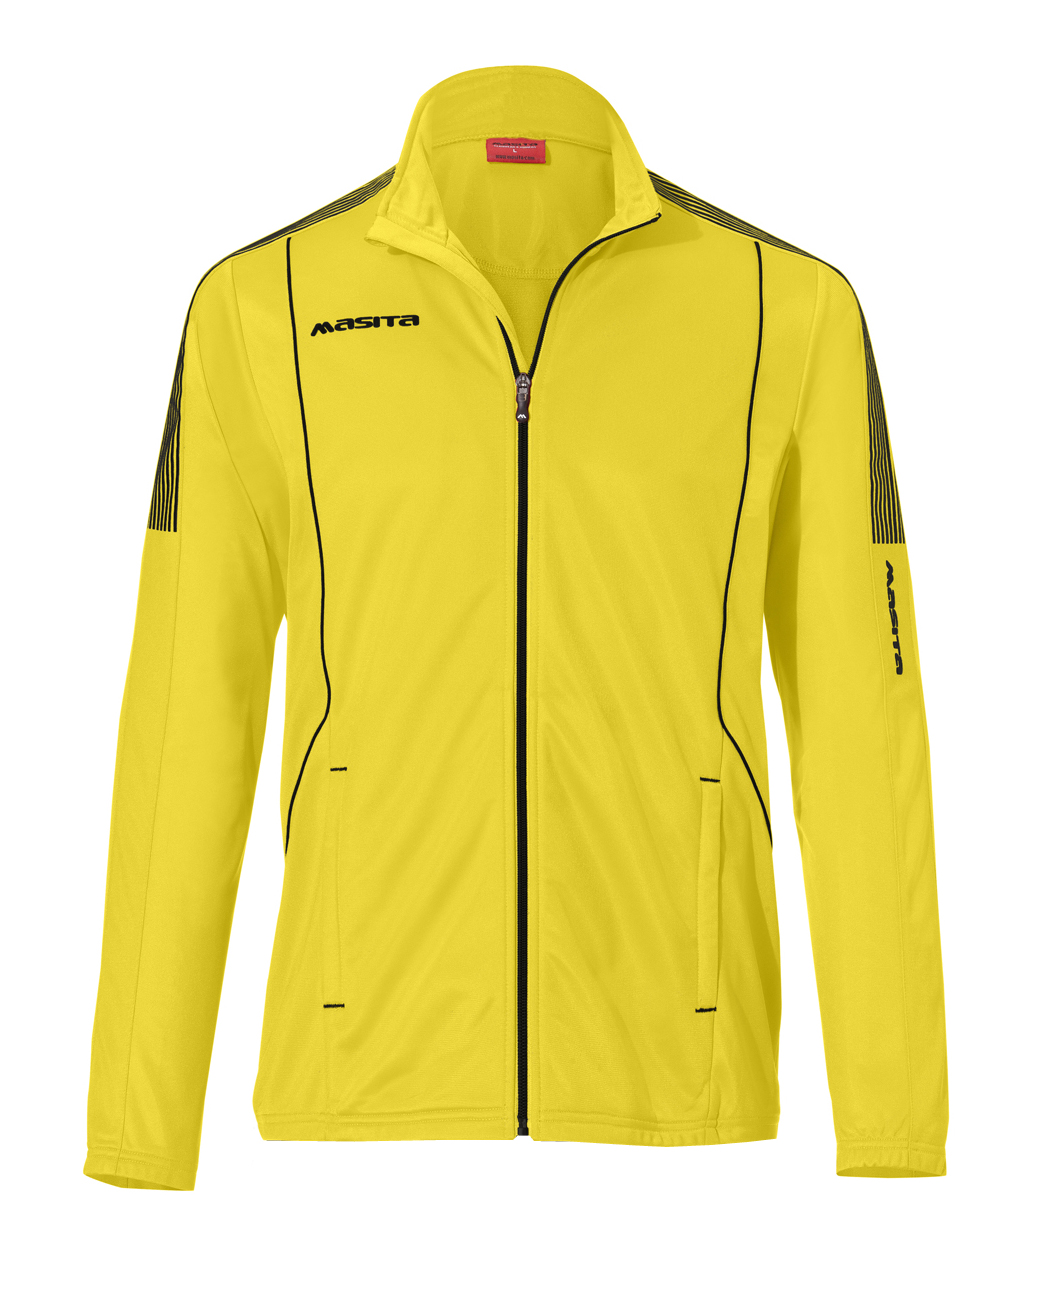 Polyester Jacket Barca  Yellow / Black